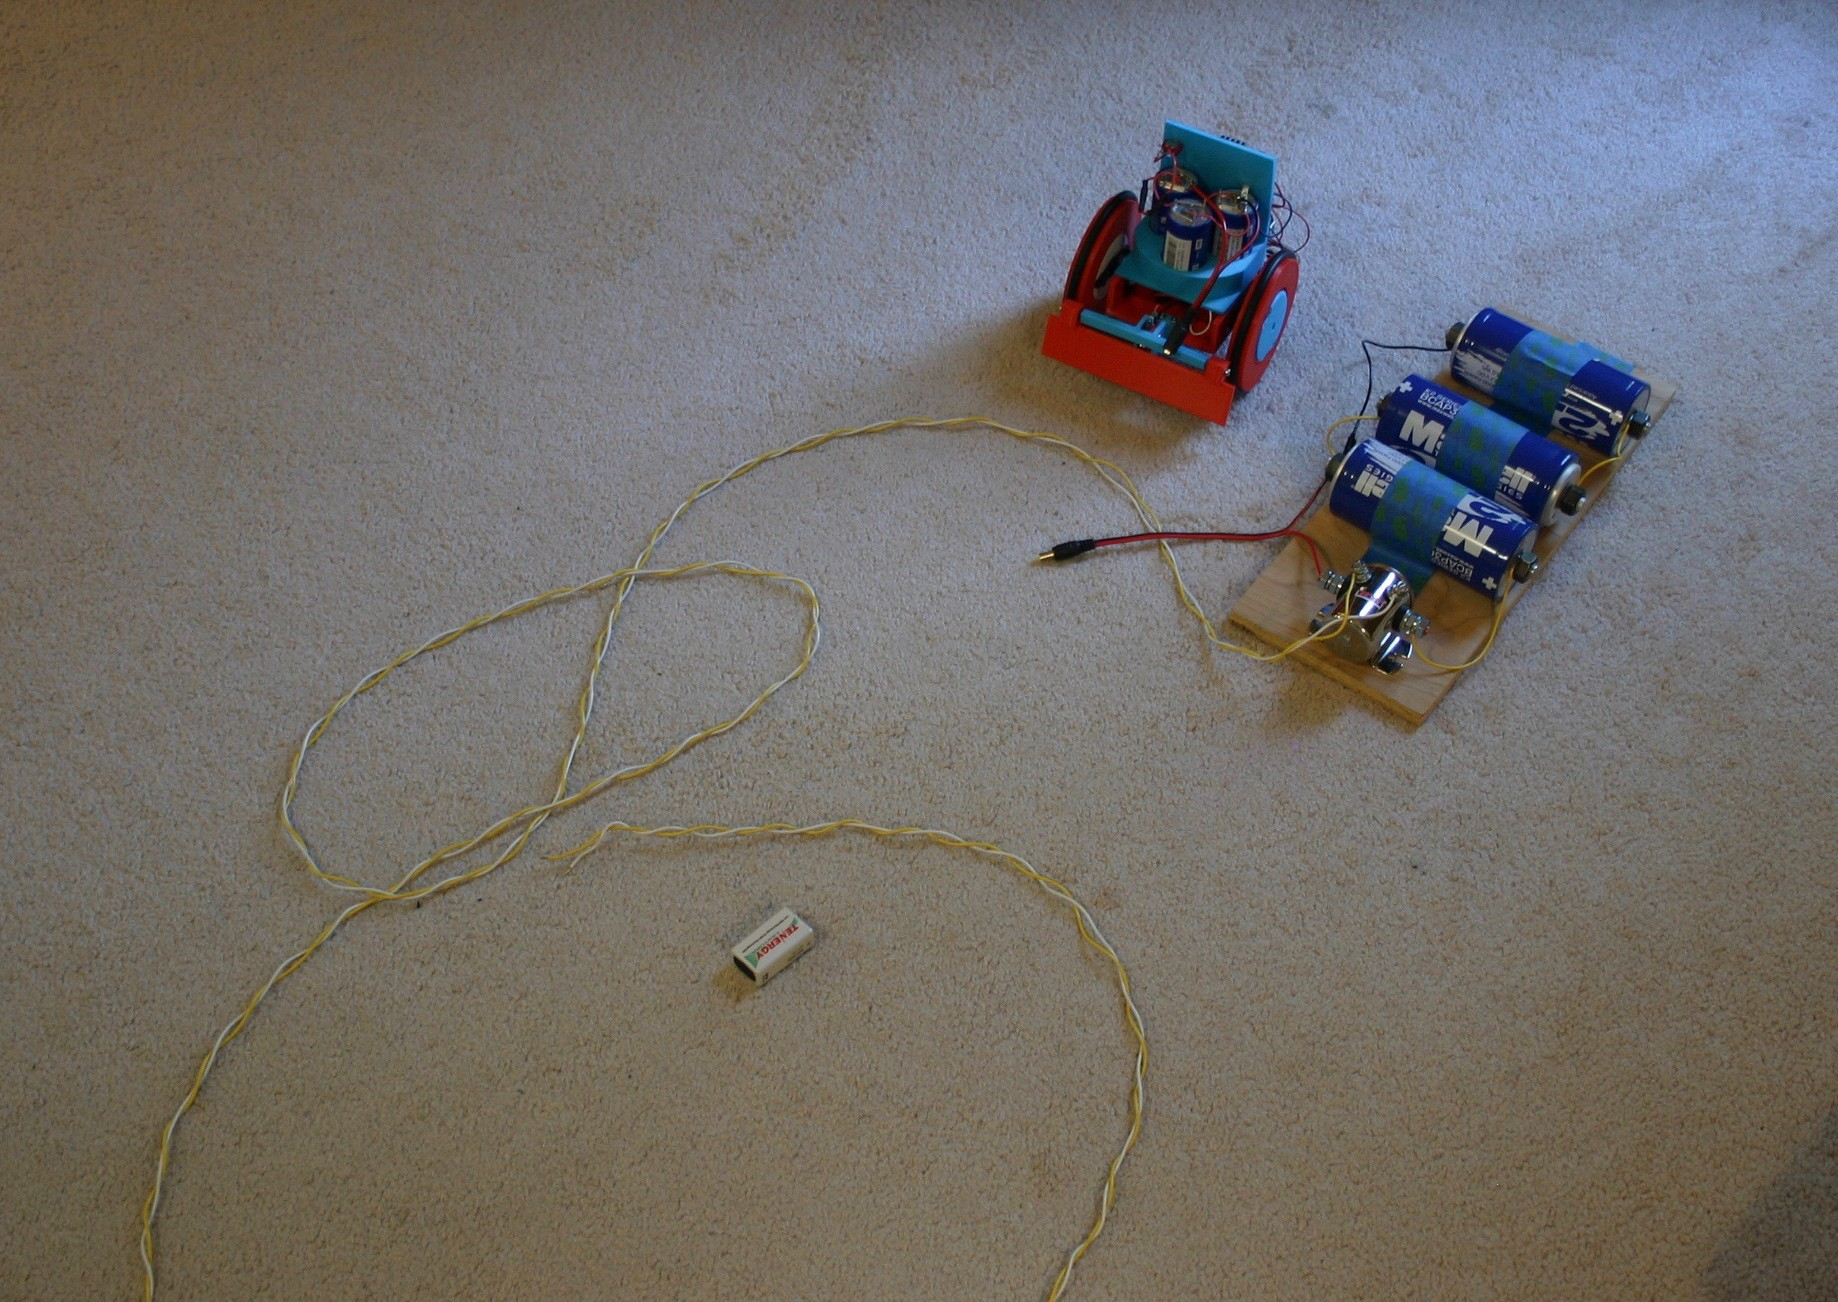 Supercapacitor Rover Charges in 10 Seconds - Hackster Blog